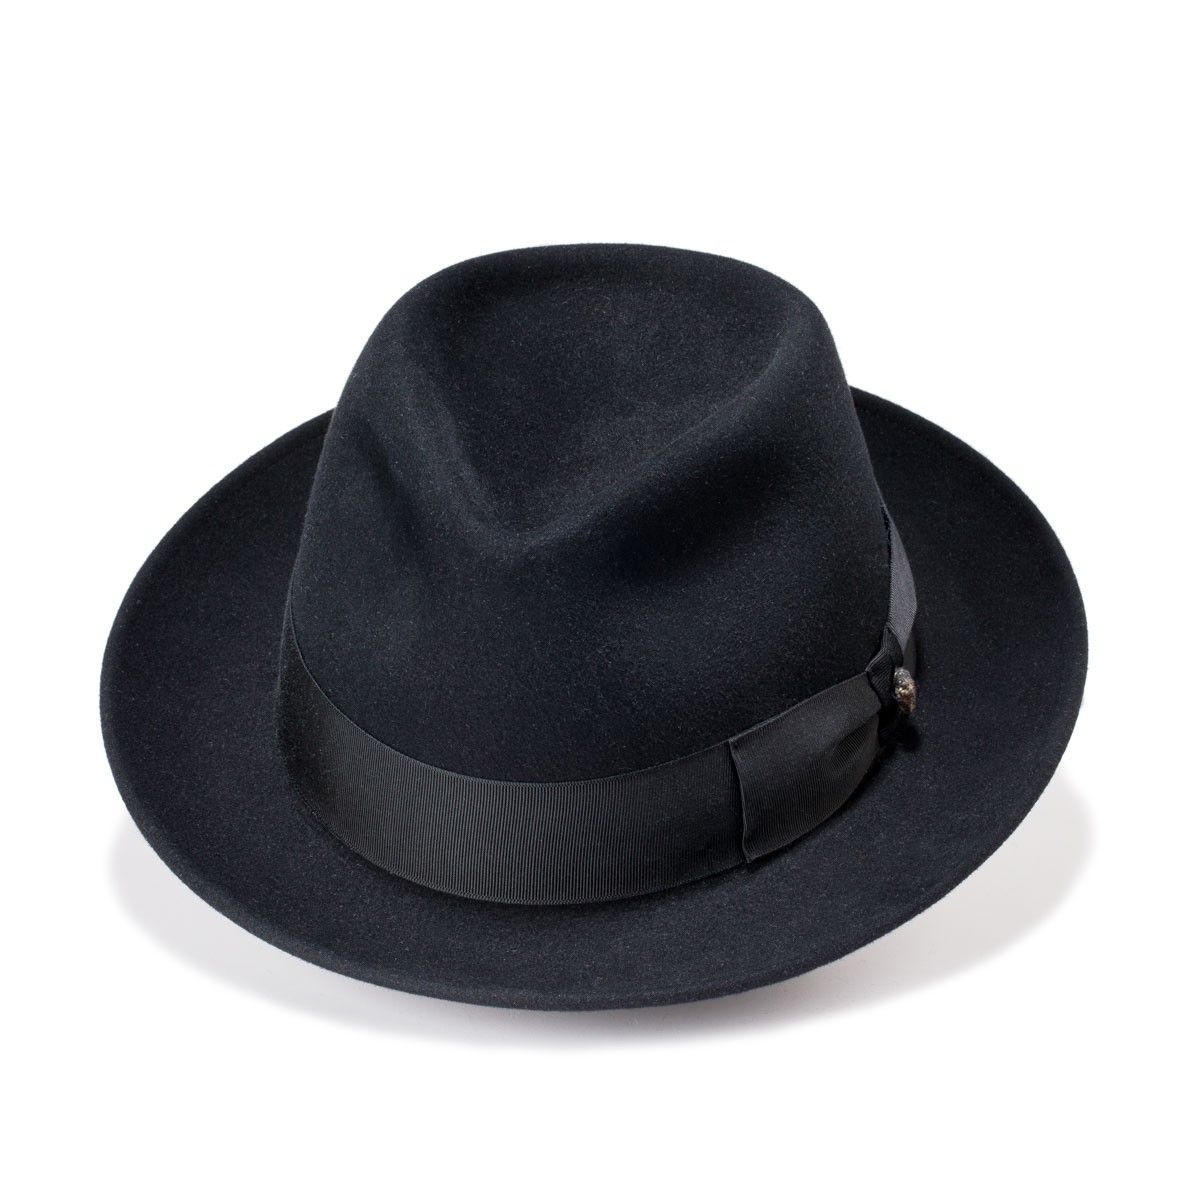 London Black Fedora Style Felt Hat. Handmade in Spain. Fernandez y Roche